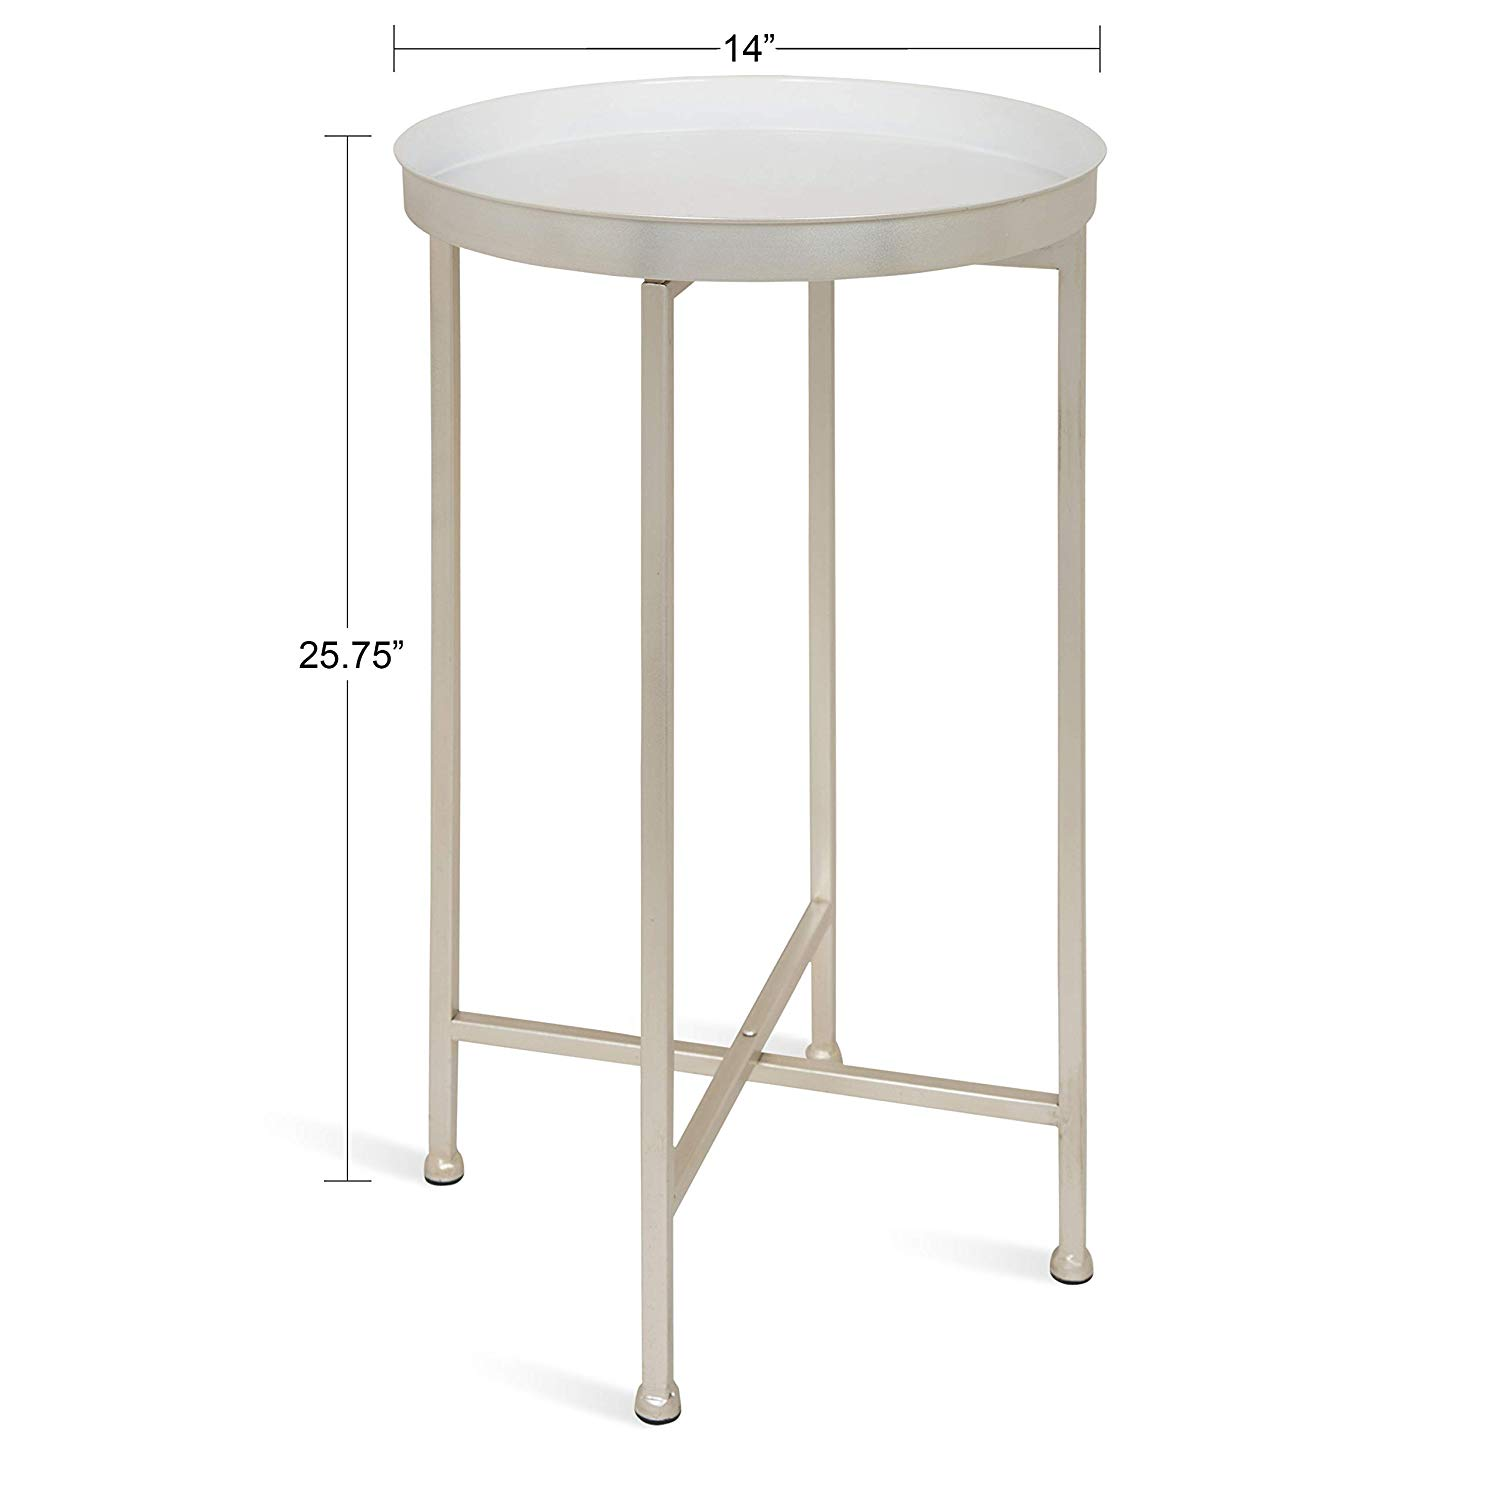 kate and laurel celia round metal foldable tray accent table white with silver base kitchen dining console lucite stacking tables target daybed fold sofa edmonton tablette dale